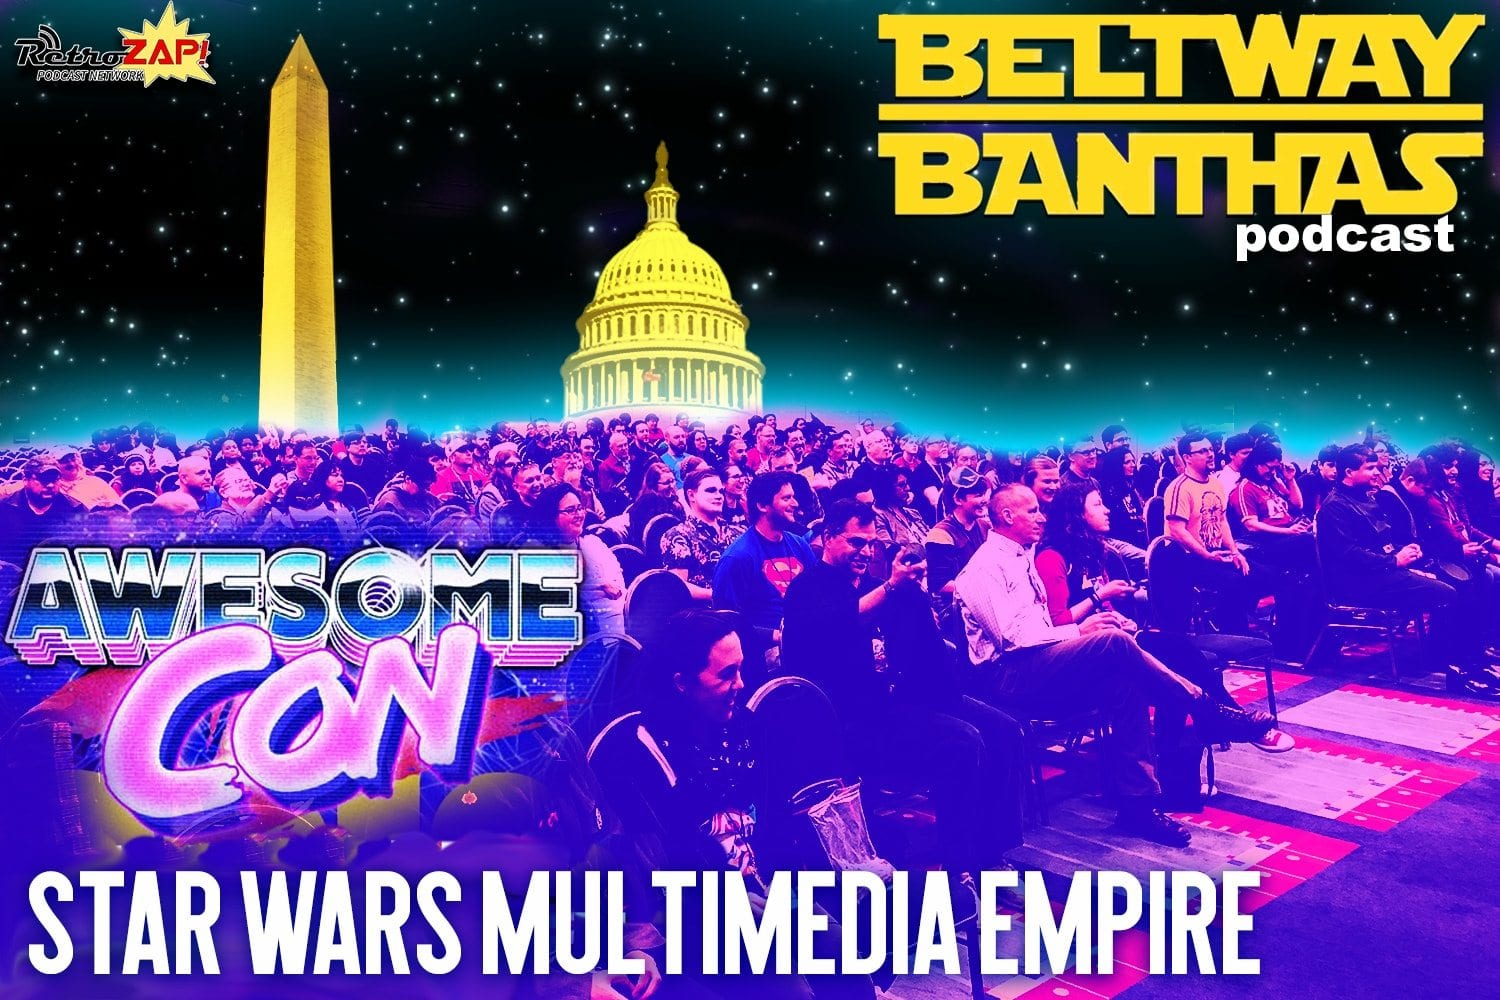 Beltway Banthas Live at Awesome Con: Star Wars Multimedia Empire